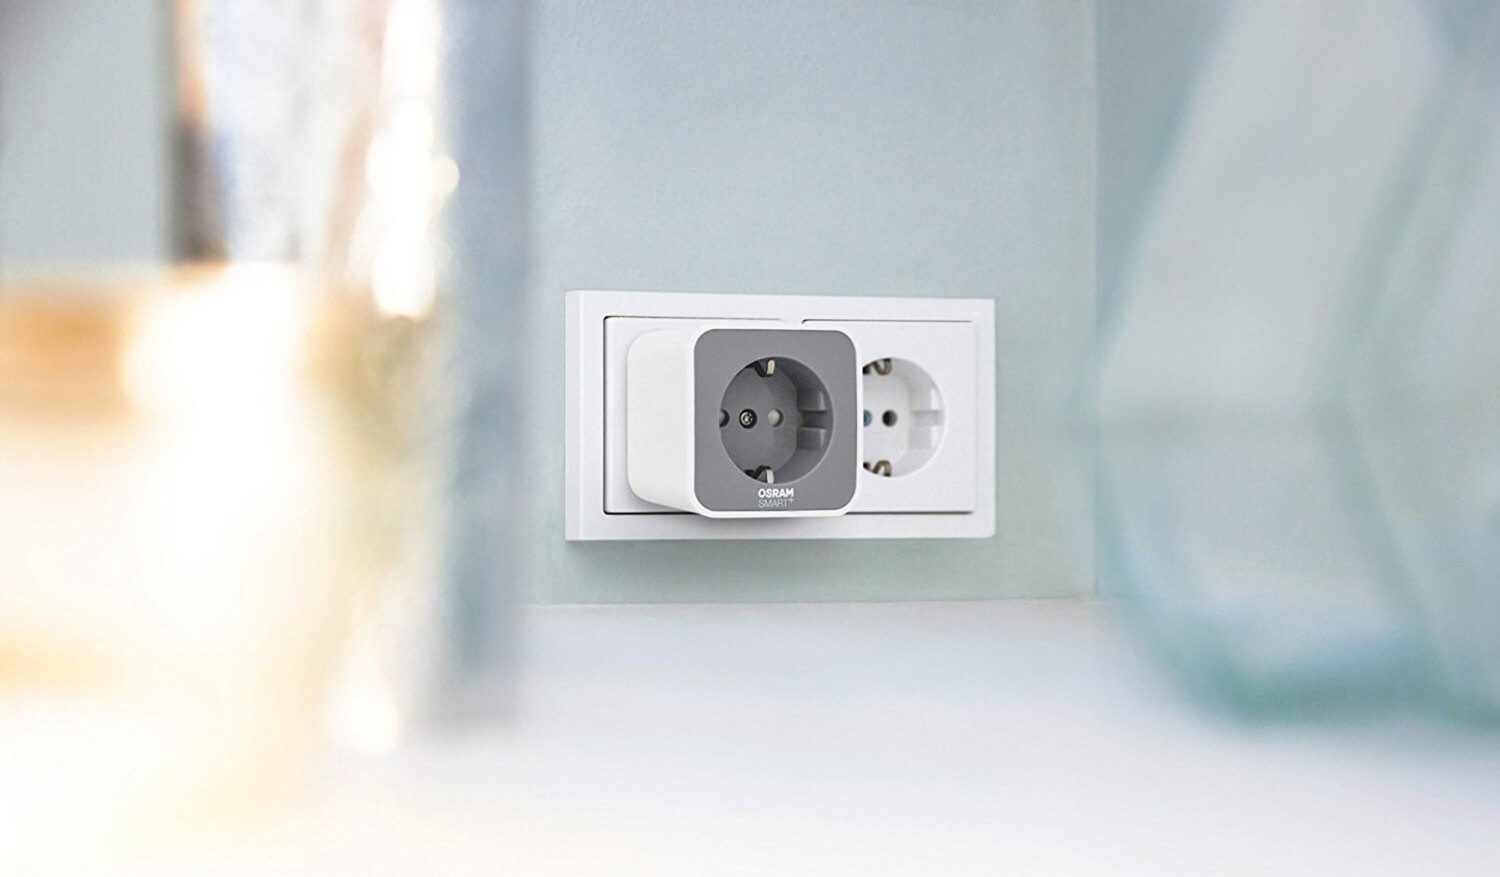 Connecting an Osram Smart+ plug to Philips Hue - Franklin